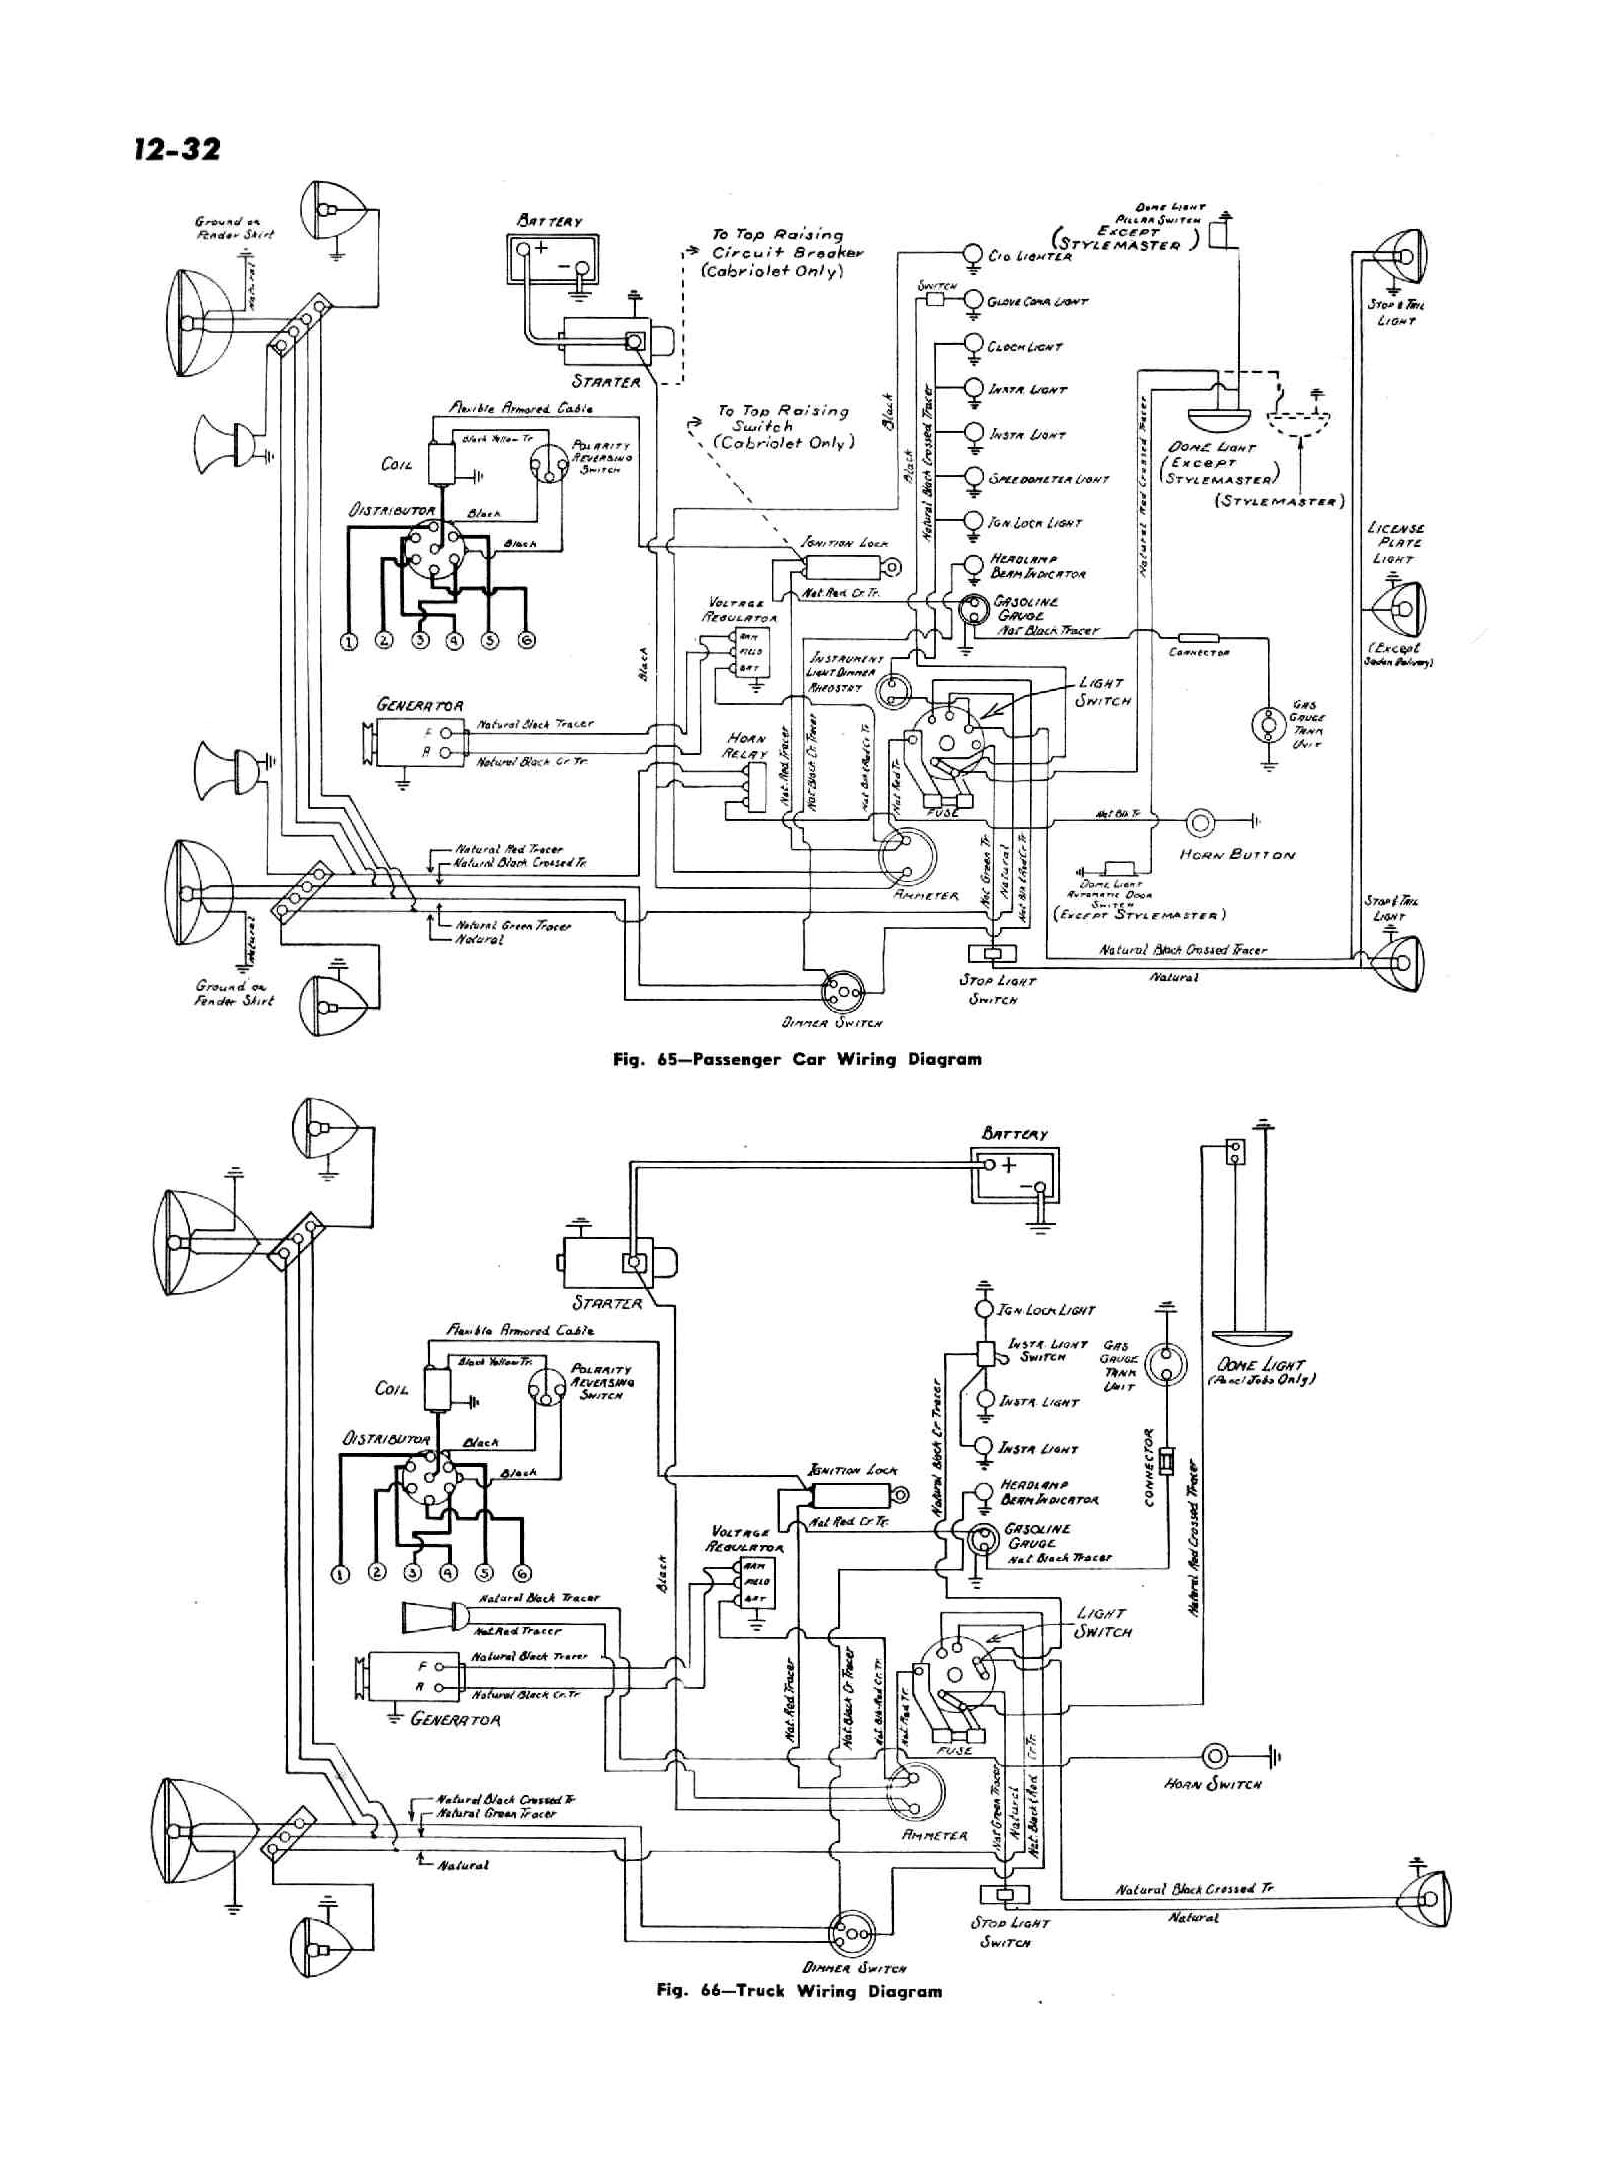 4247csm1232 chevy wiring diagrams Wiring Schematics for Johnson Outboards at reclaimingppi.co